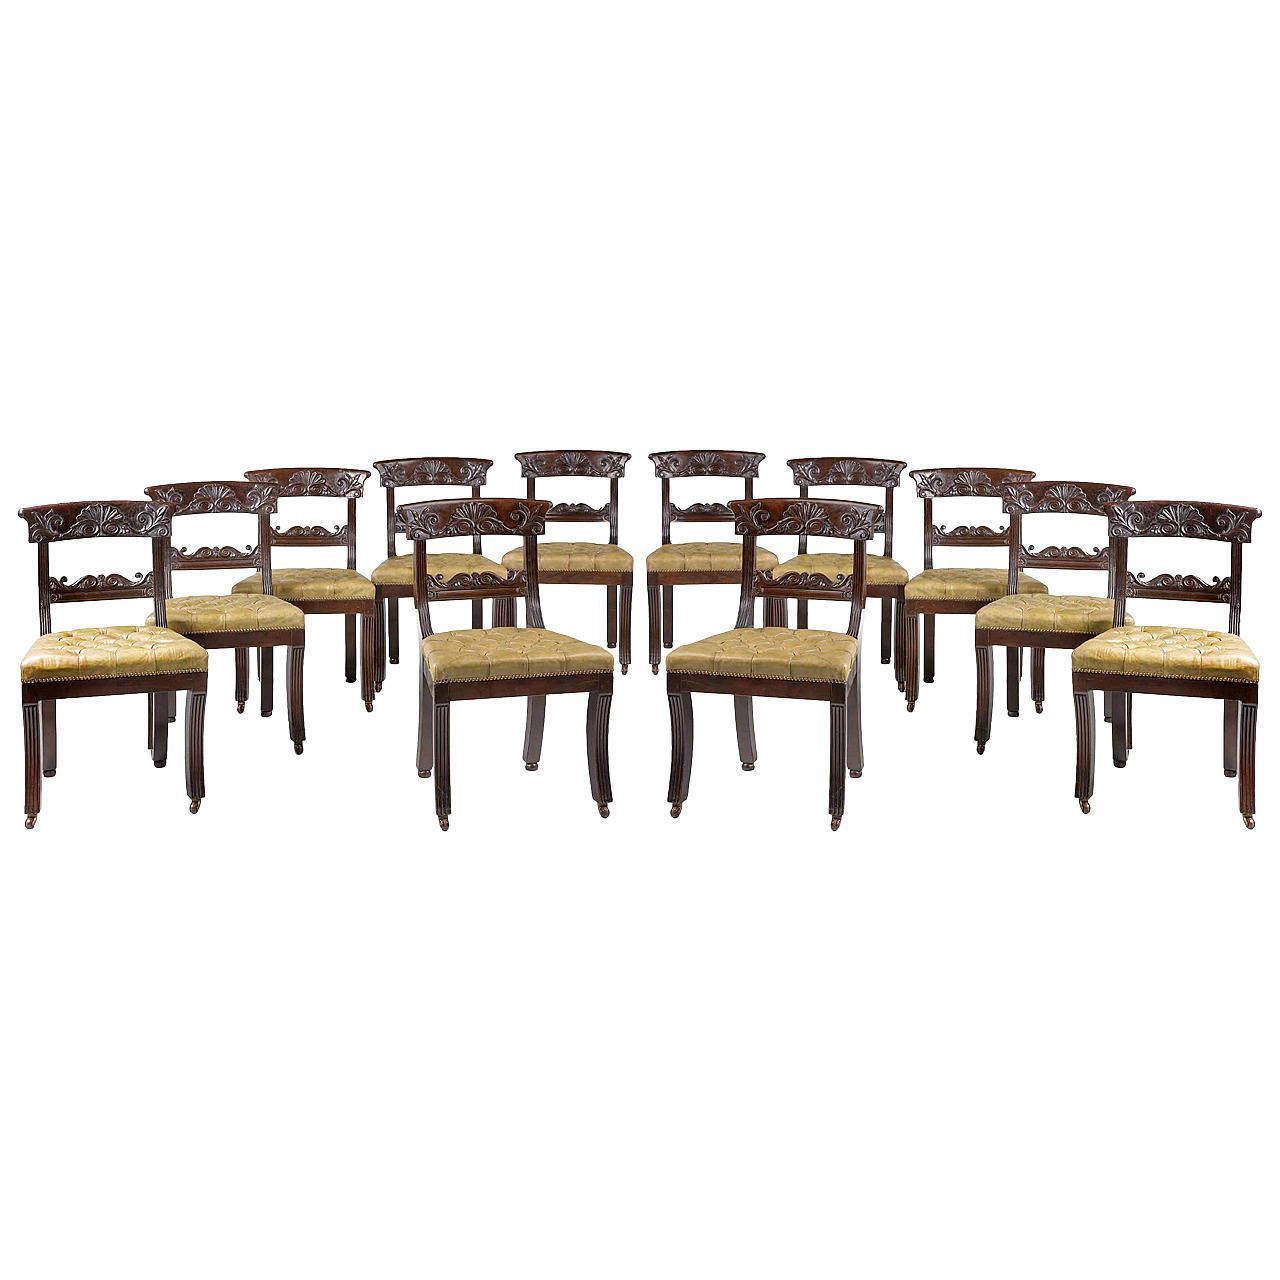 Set of 12 Regency Period Mahogany Dining or Library Chairs | From a unique…